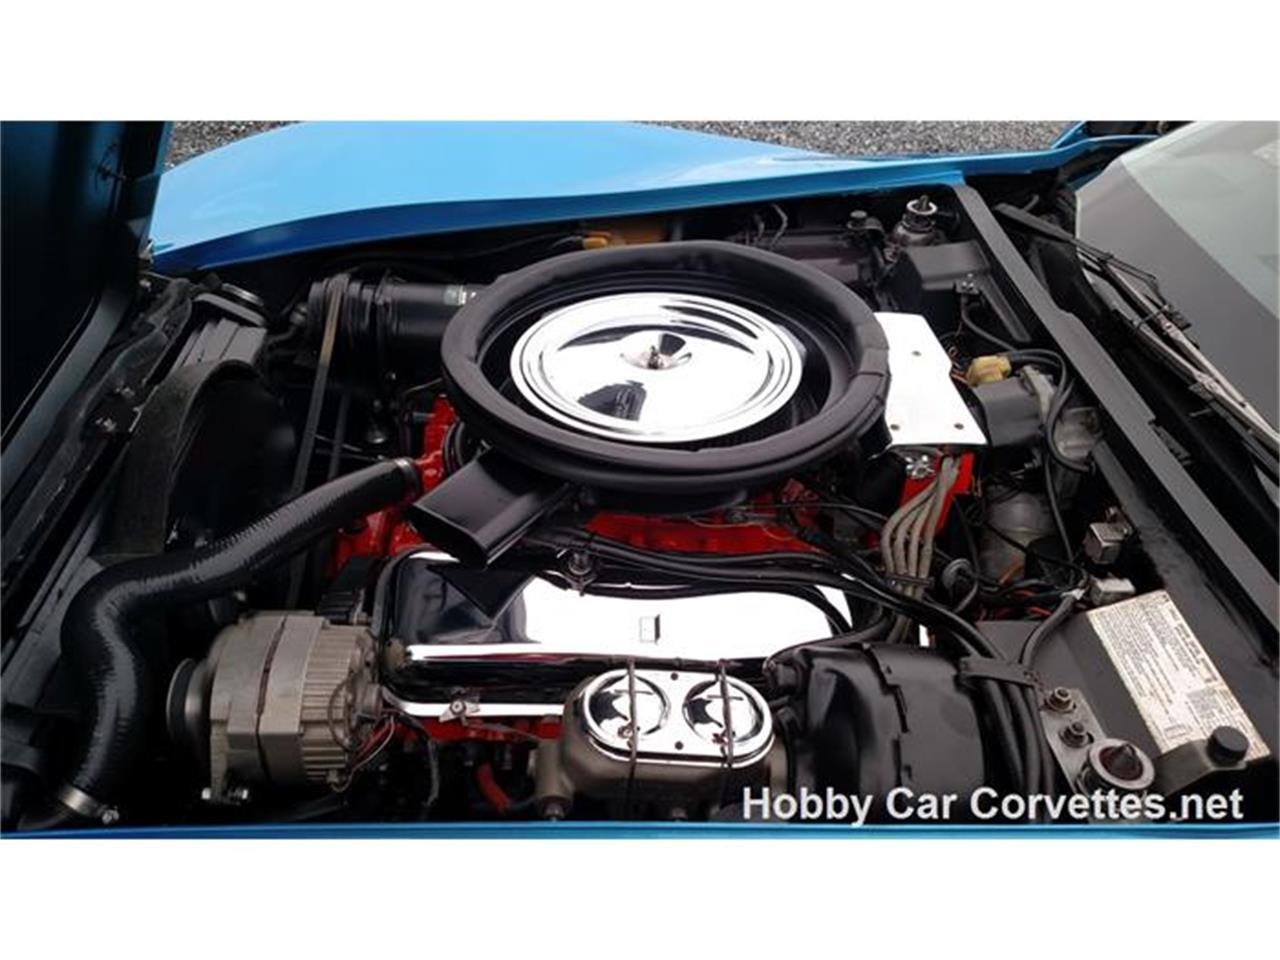 Large Picture of 1973 Corvette located in Martinsburg Pennsylvania - $39,999.00 Offered by Hobby Car Corvettes - GH05